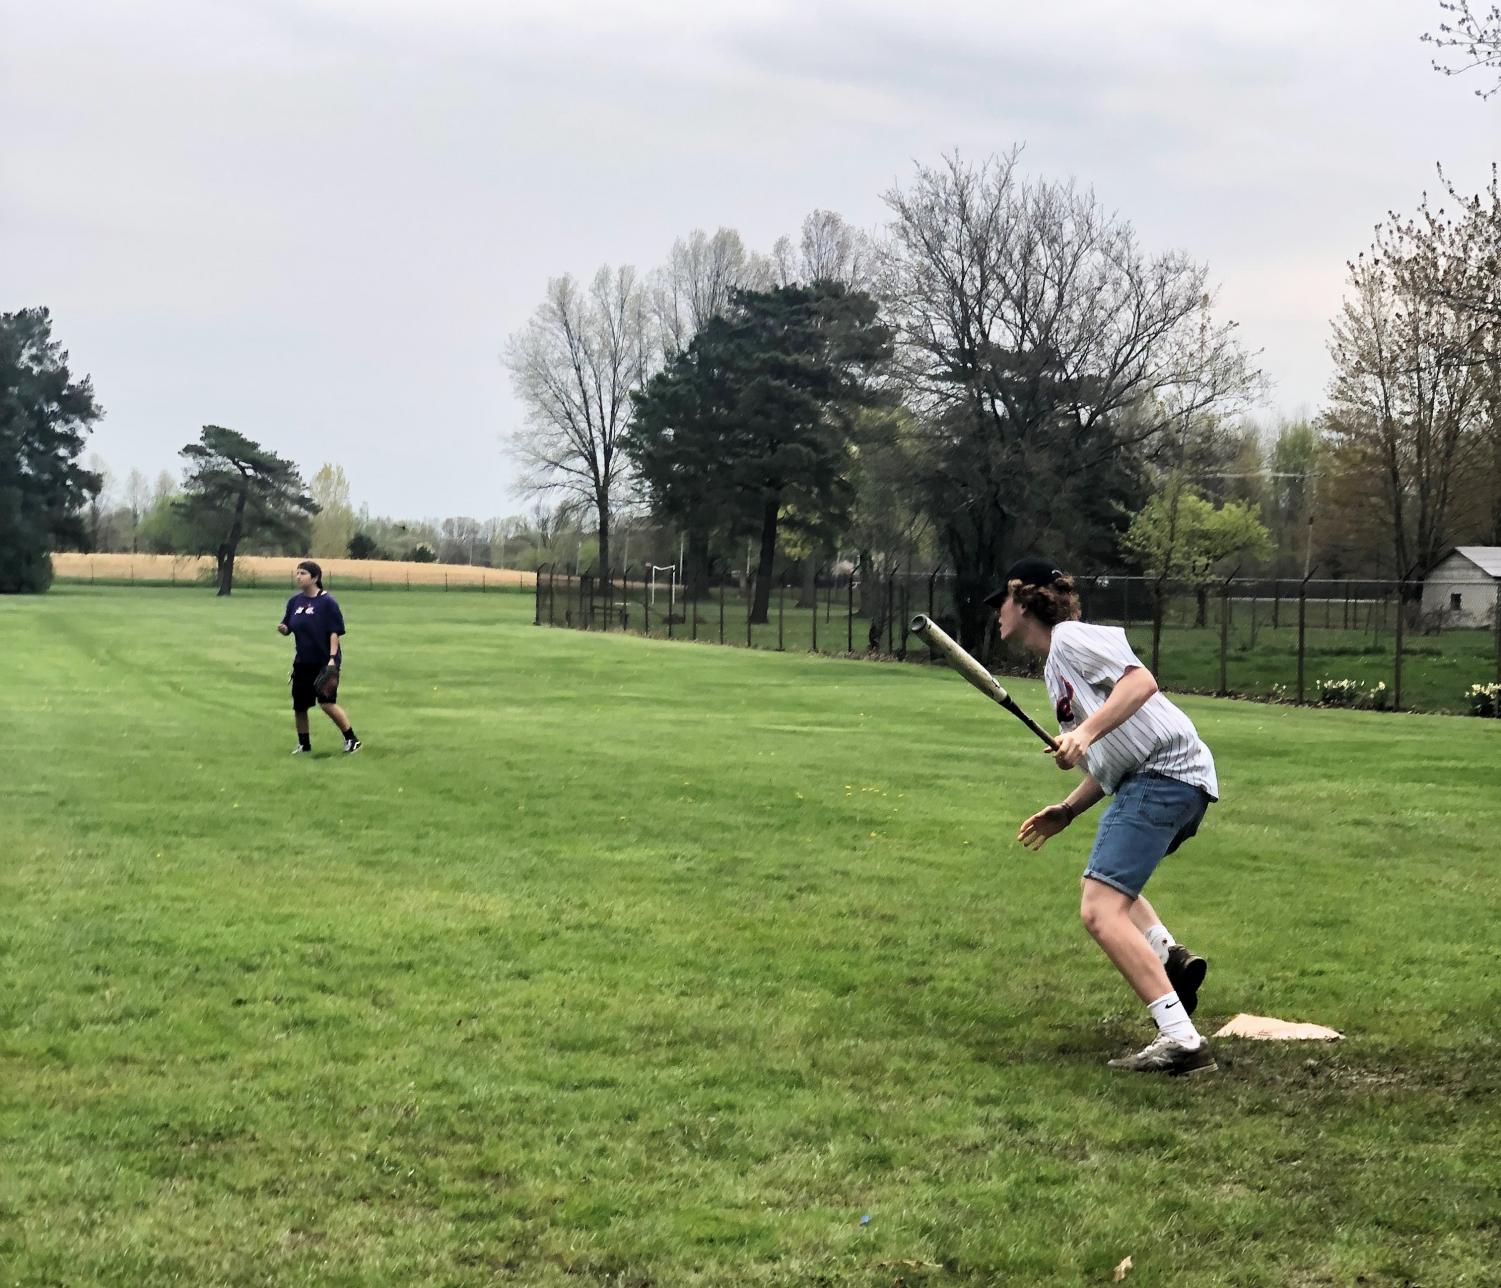 The intramural softball league provides an opportunity for non-varsity athletes to stay active and engage in a low-commitment afternoon activity, but many varsity athletes and retired student-athletes also take advantage of the relaxed yet competitive atmosphere this spring.